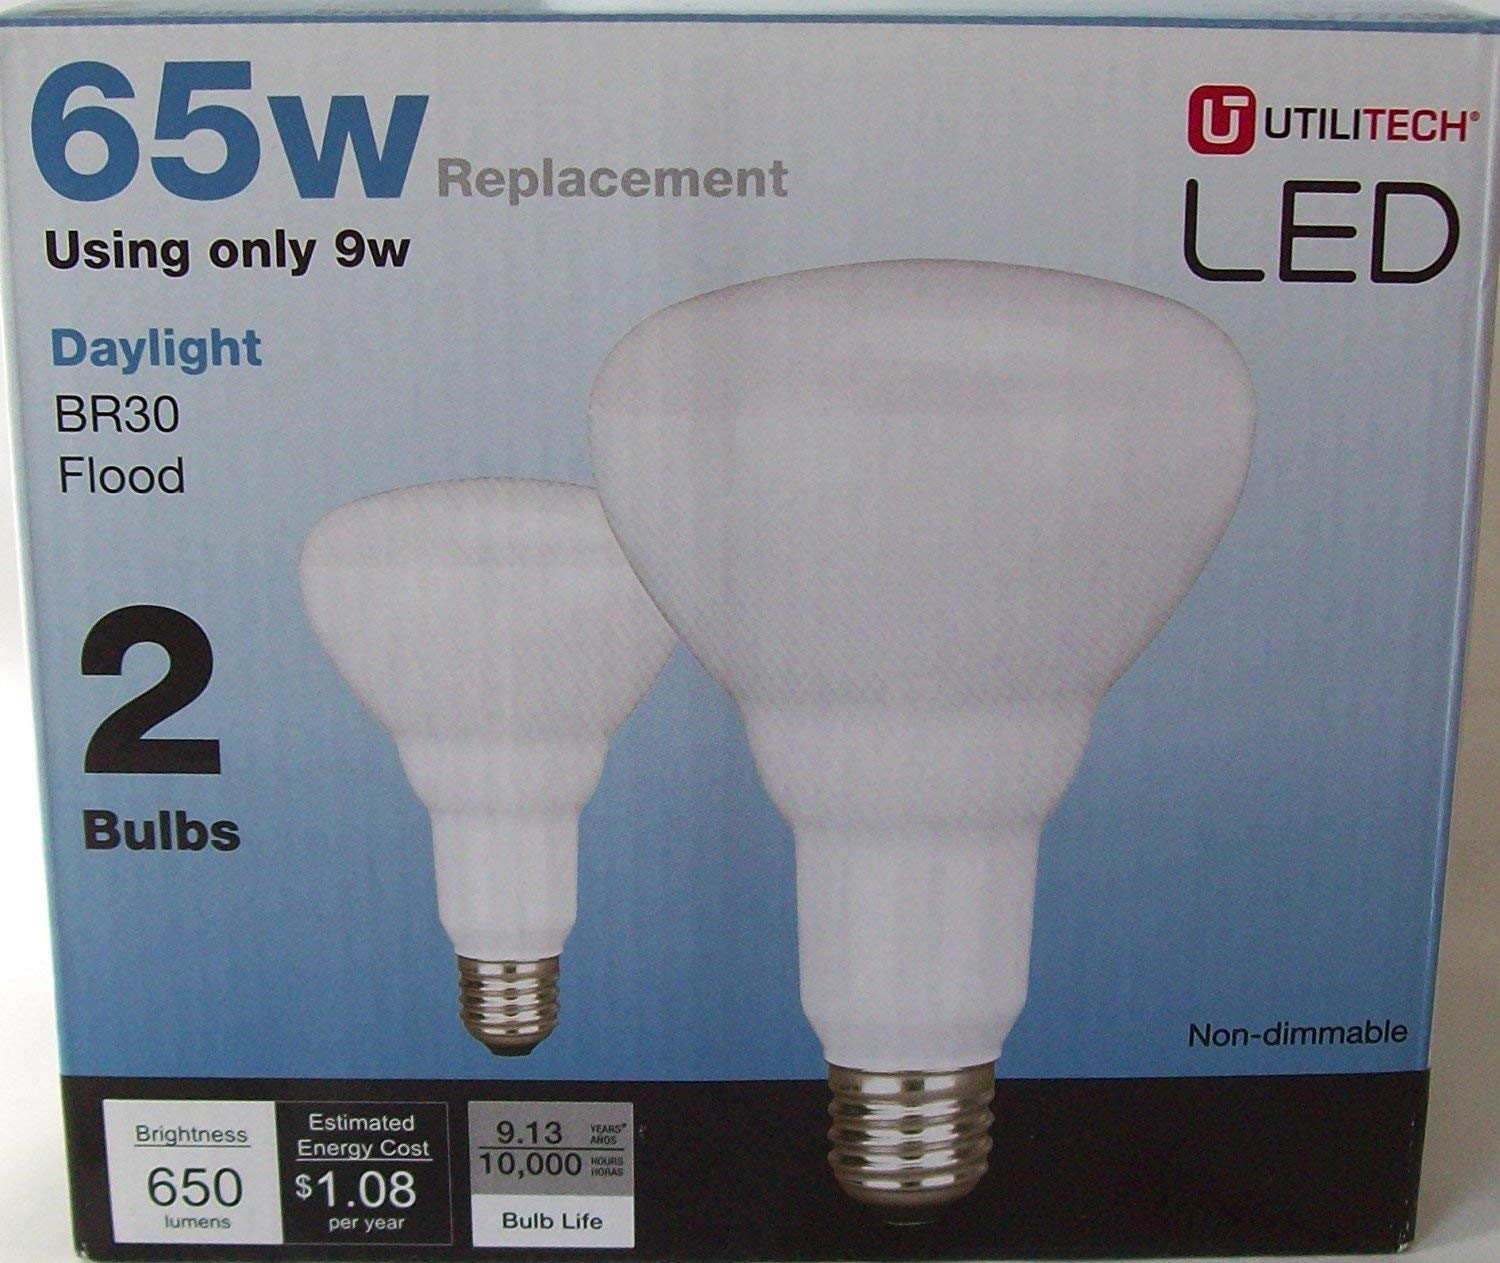 Utilitech 4-Pack LED Br30 65W(9W) Indoor Recessed Flood Light Daylight Bulbs Non-Dimmable